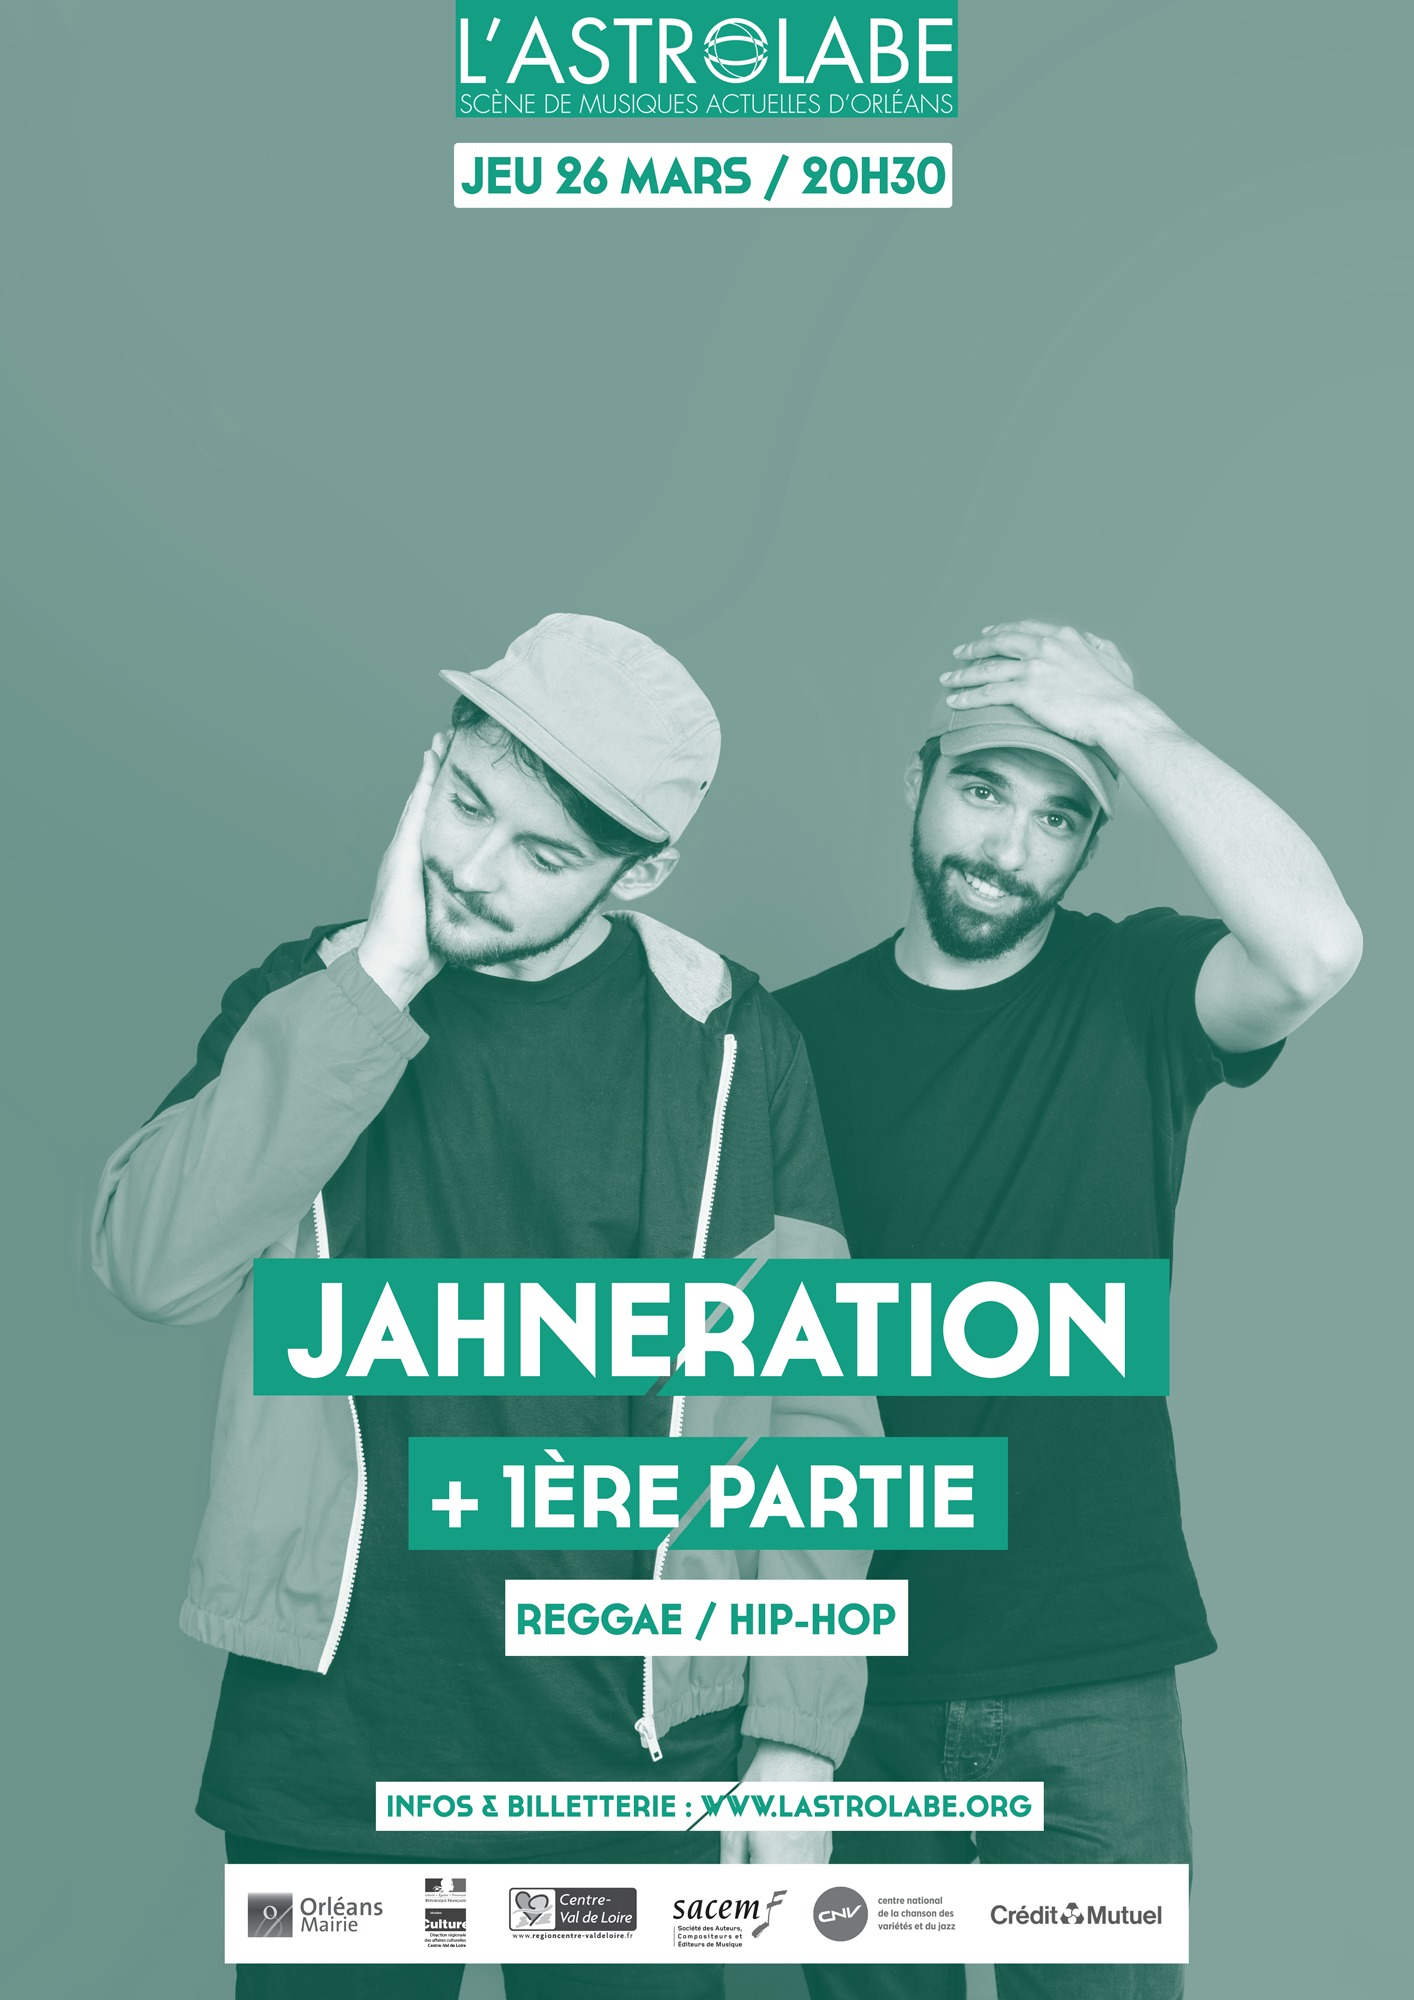 JAHNERATION + BAZIL